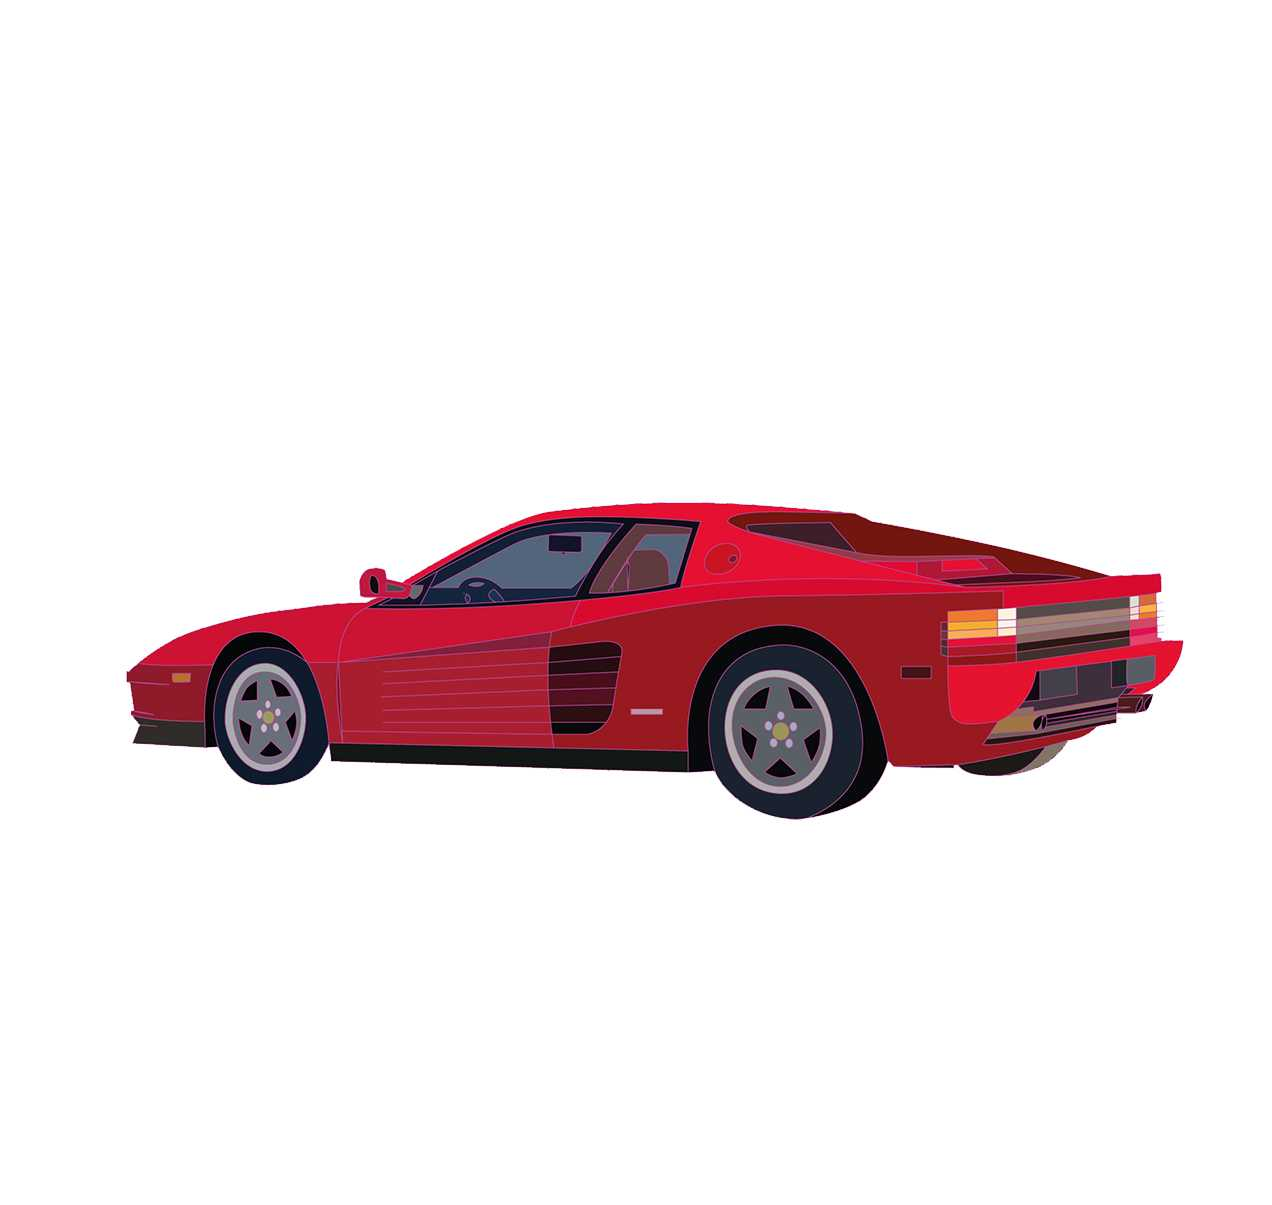 Ferrari Testarossa Illustration